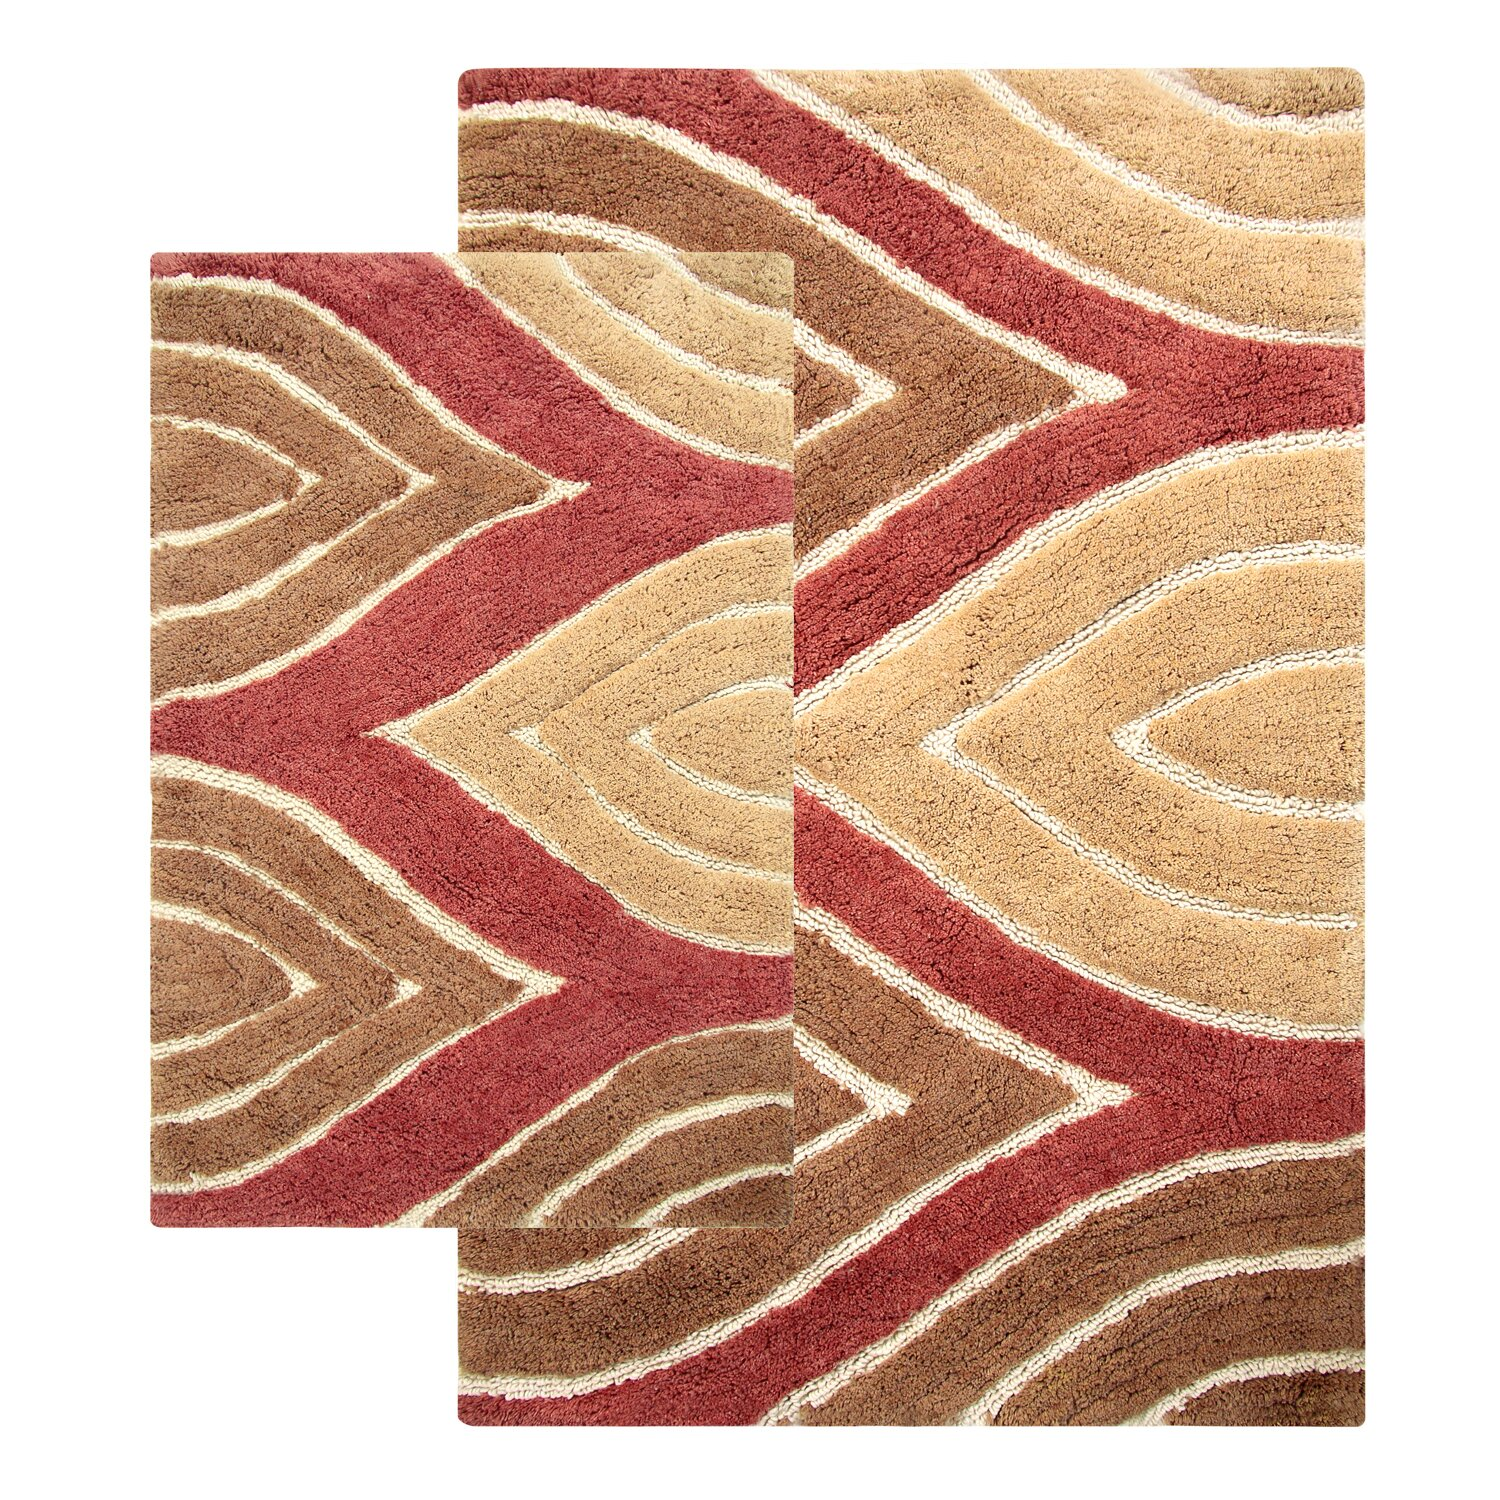 Model Set Of 2 Capri Bath Rugs  Clearance  TJMaxx